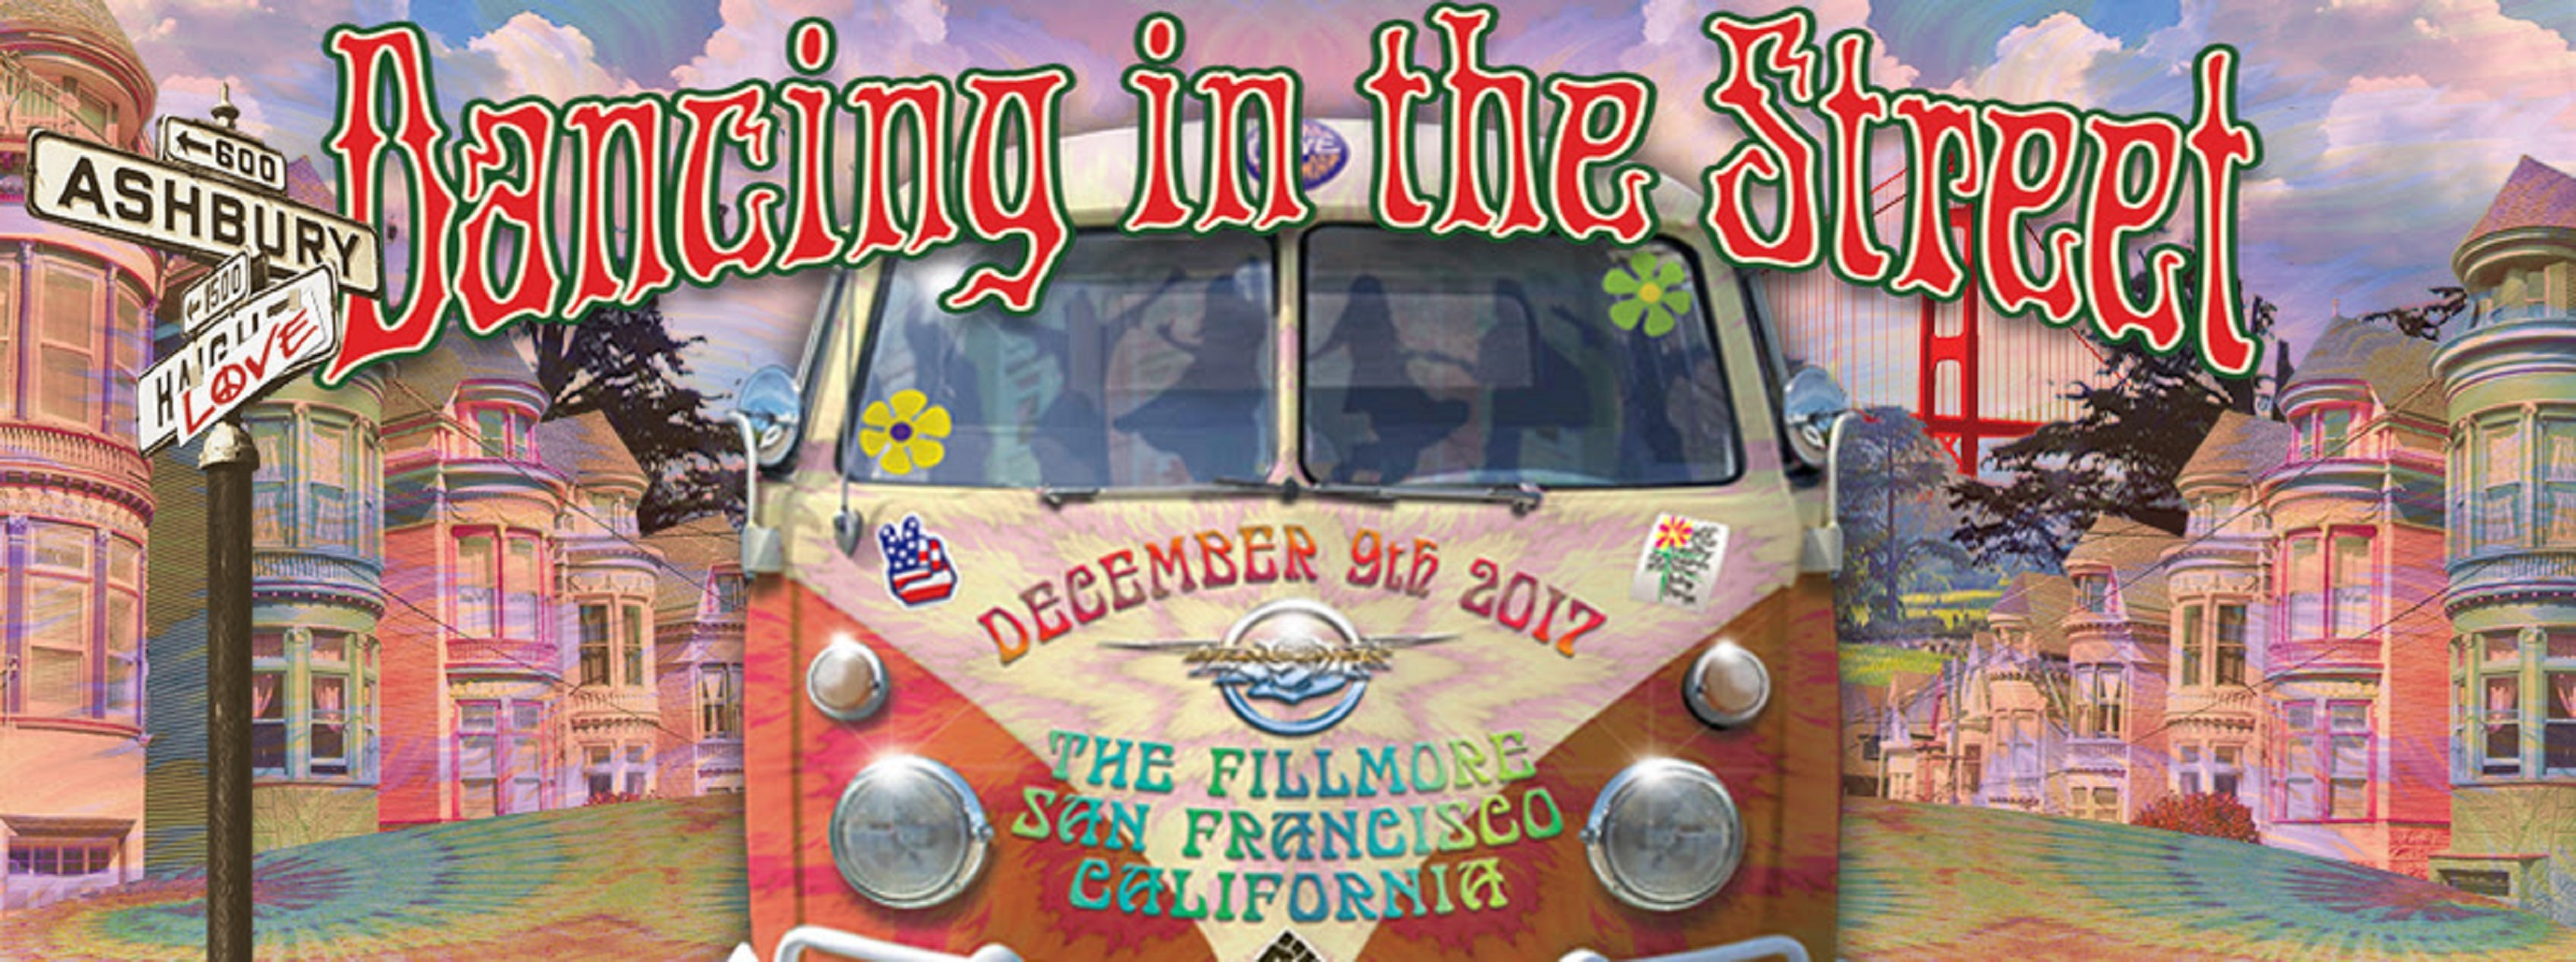 This Saturday at The Fillmore: A Celebration for the Ages!